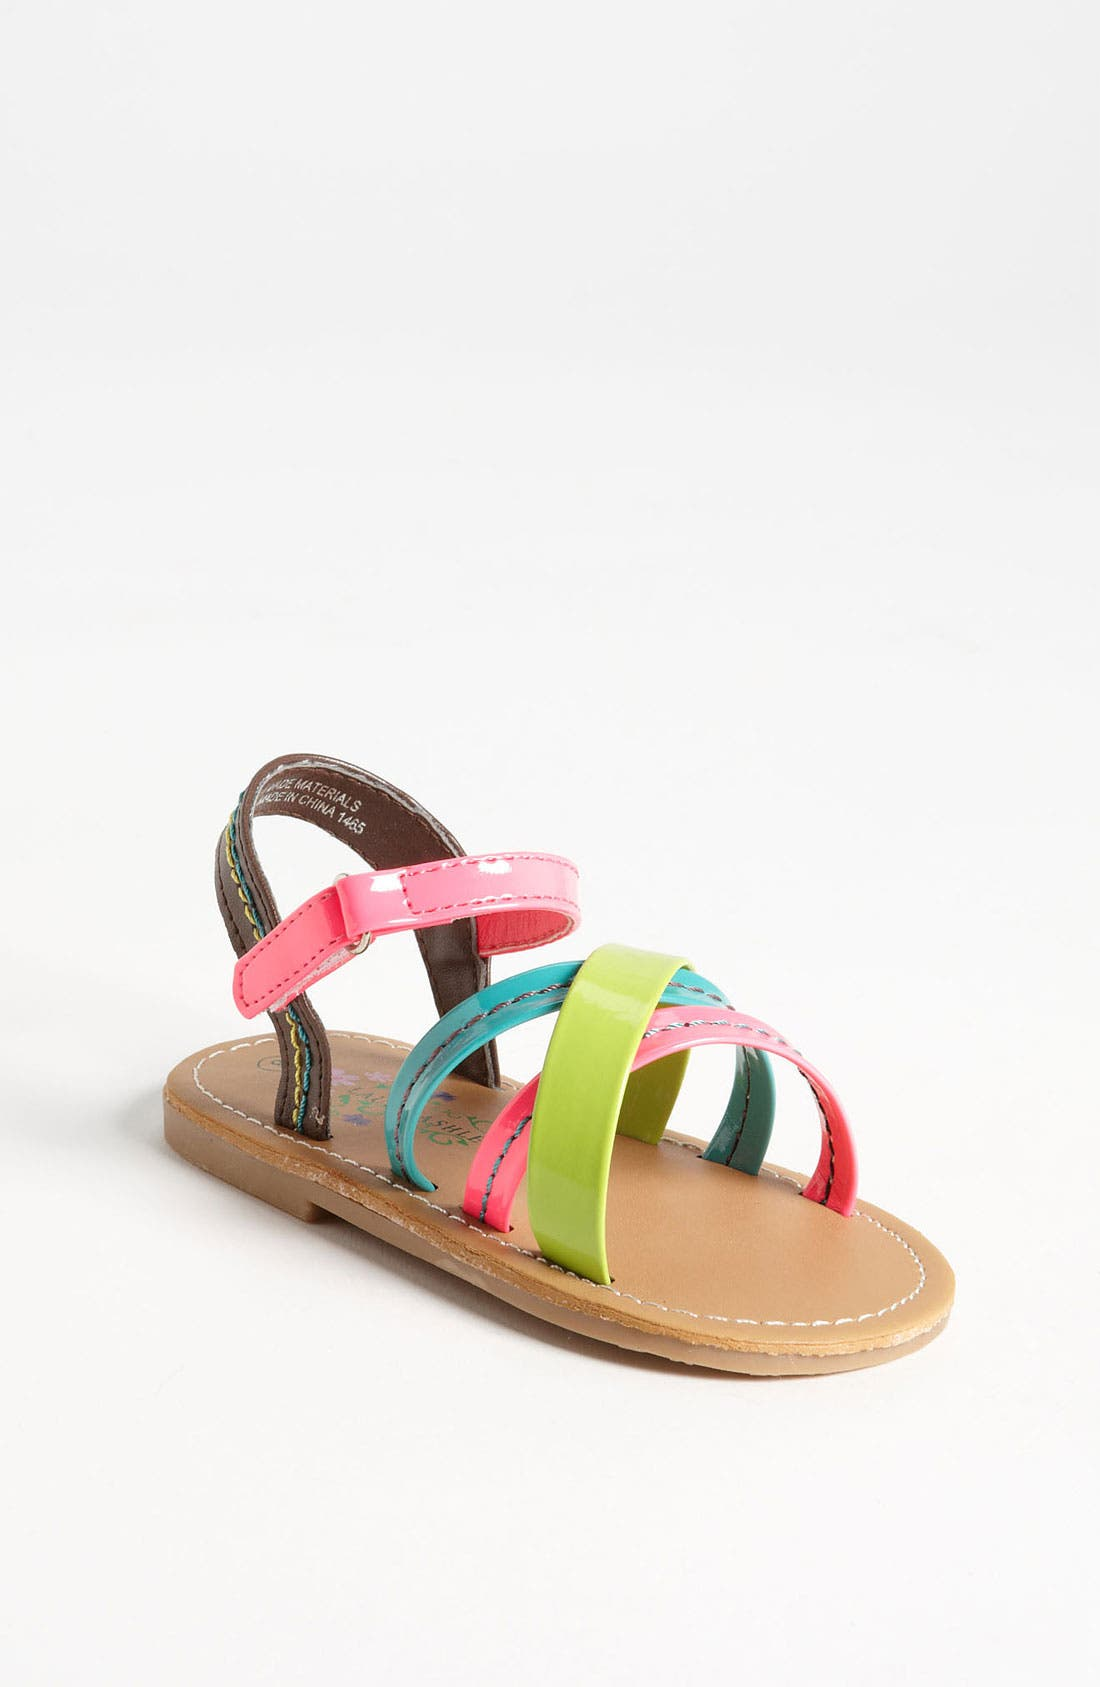 Alternate Image 1 Selected - Laura Ashley 'Neon' Sandal (Walker & Toddler)